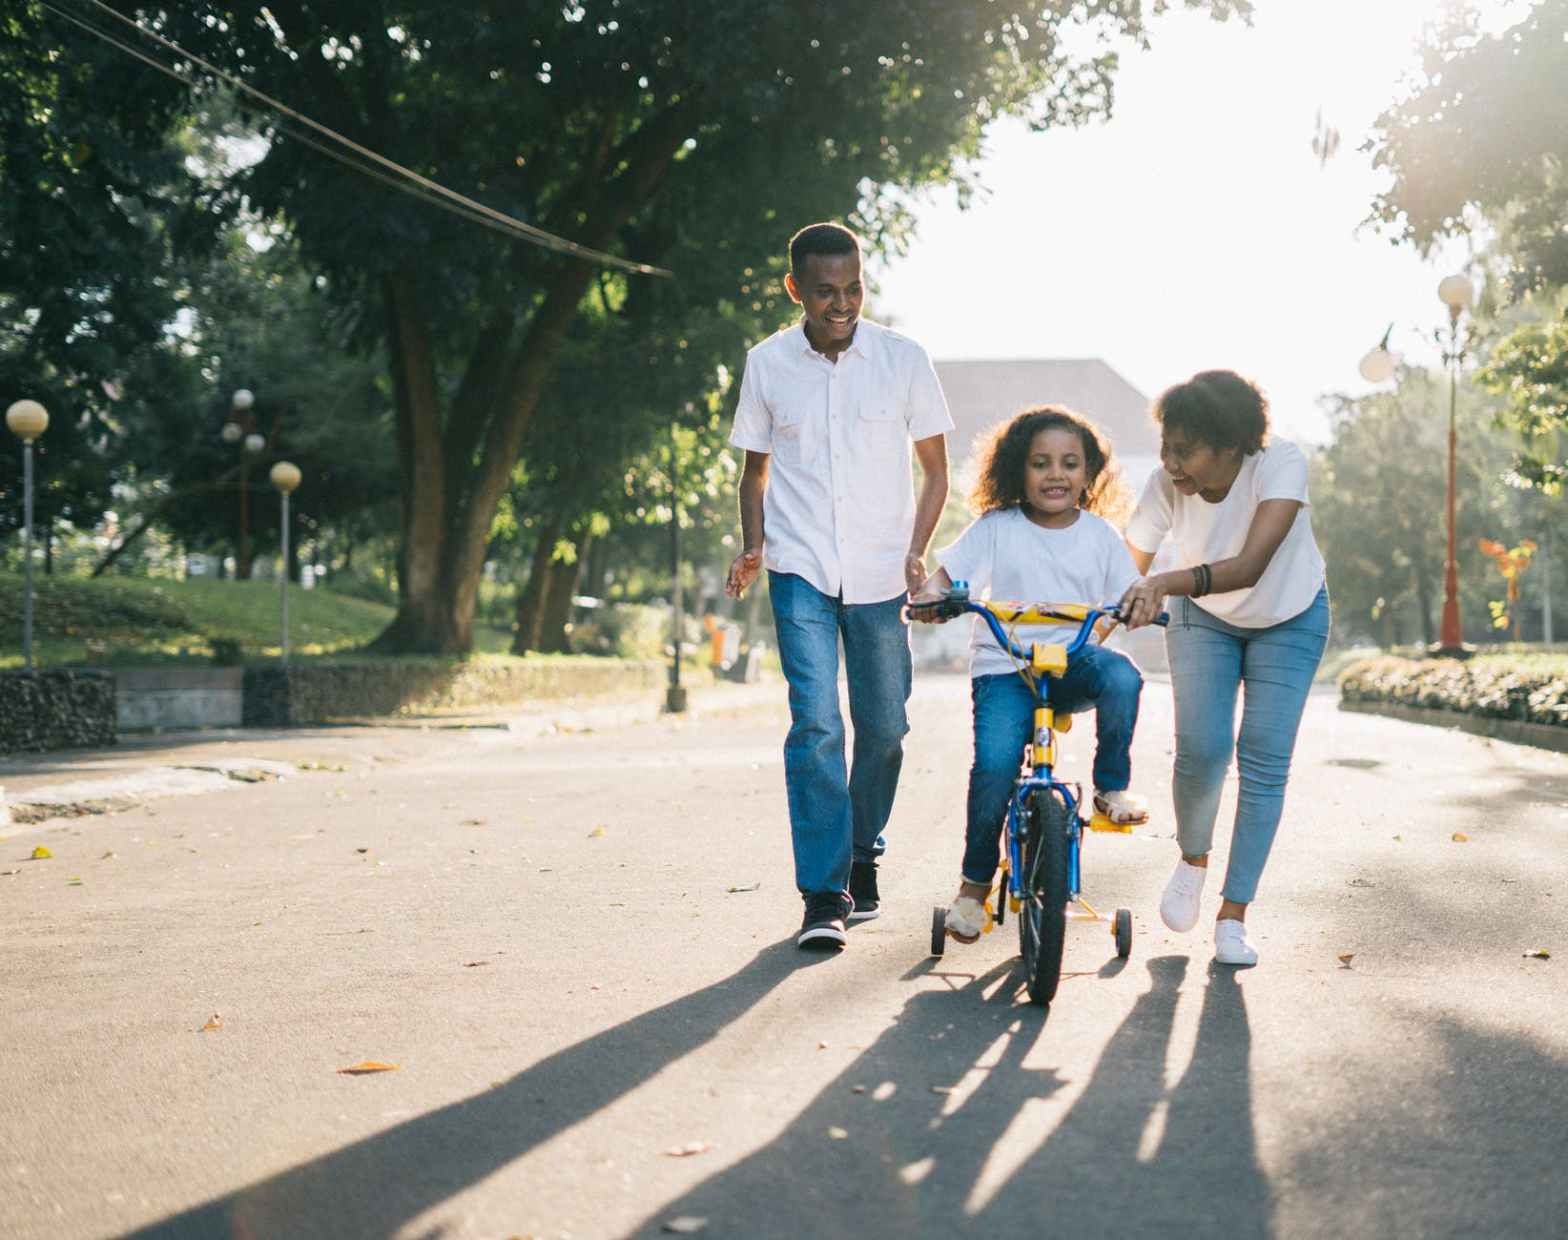 Man standing beside his wife teaching their child how to ride bicycle to Help their kid Deal with Stress During the Pandemic.